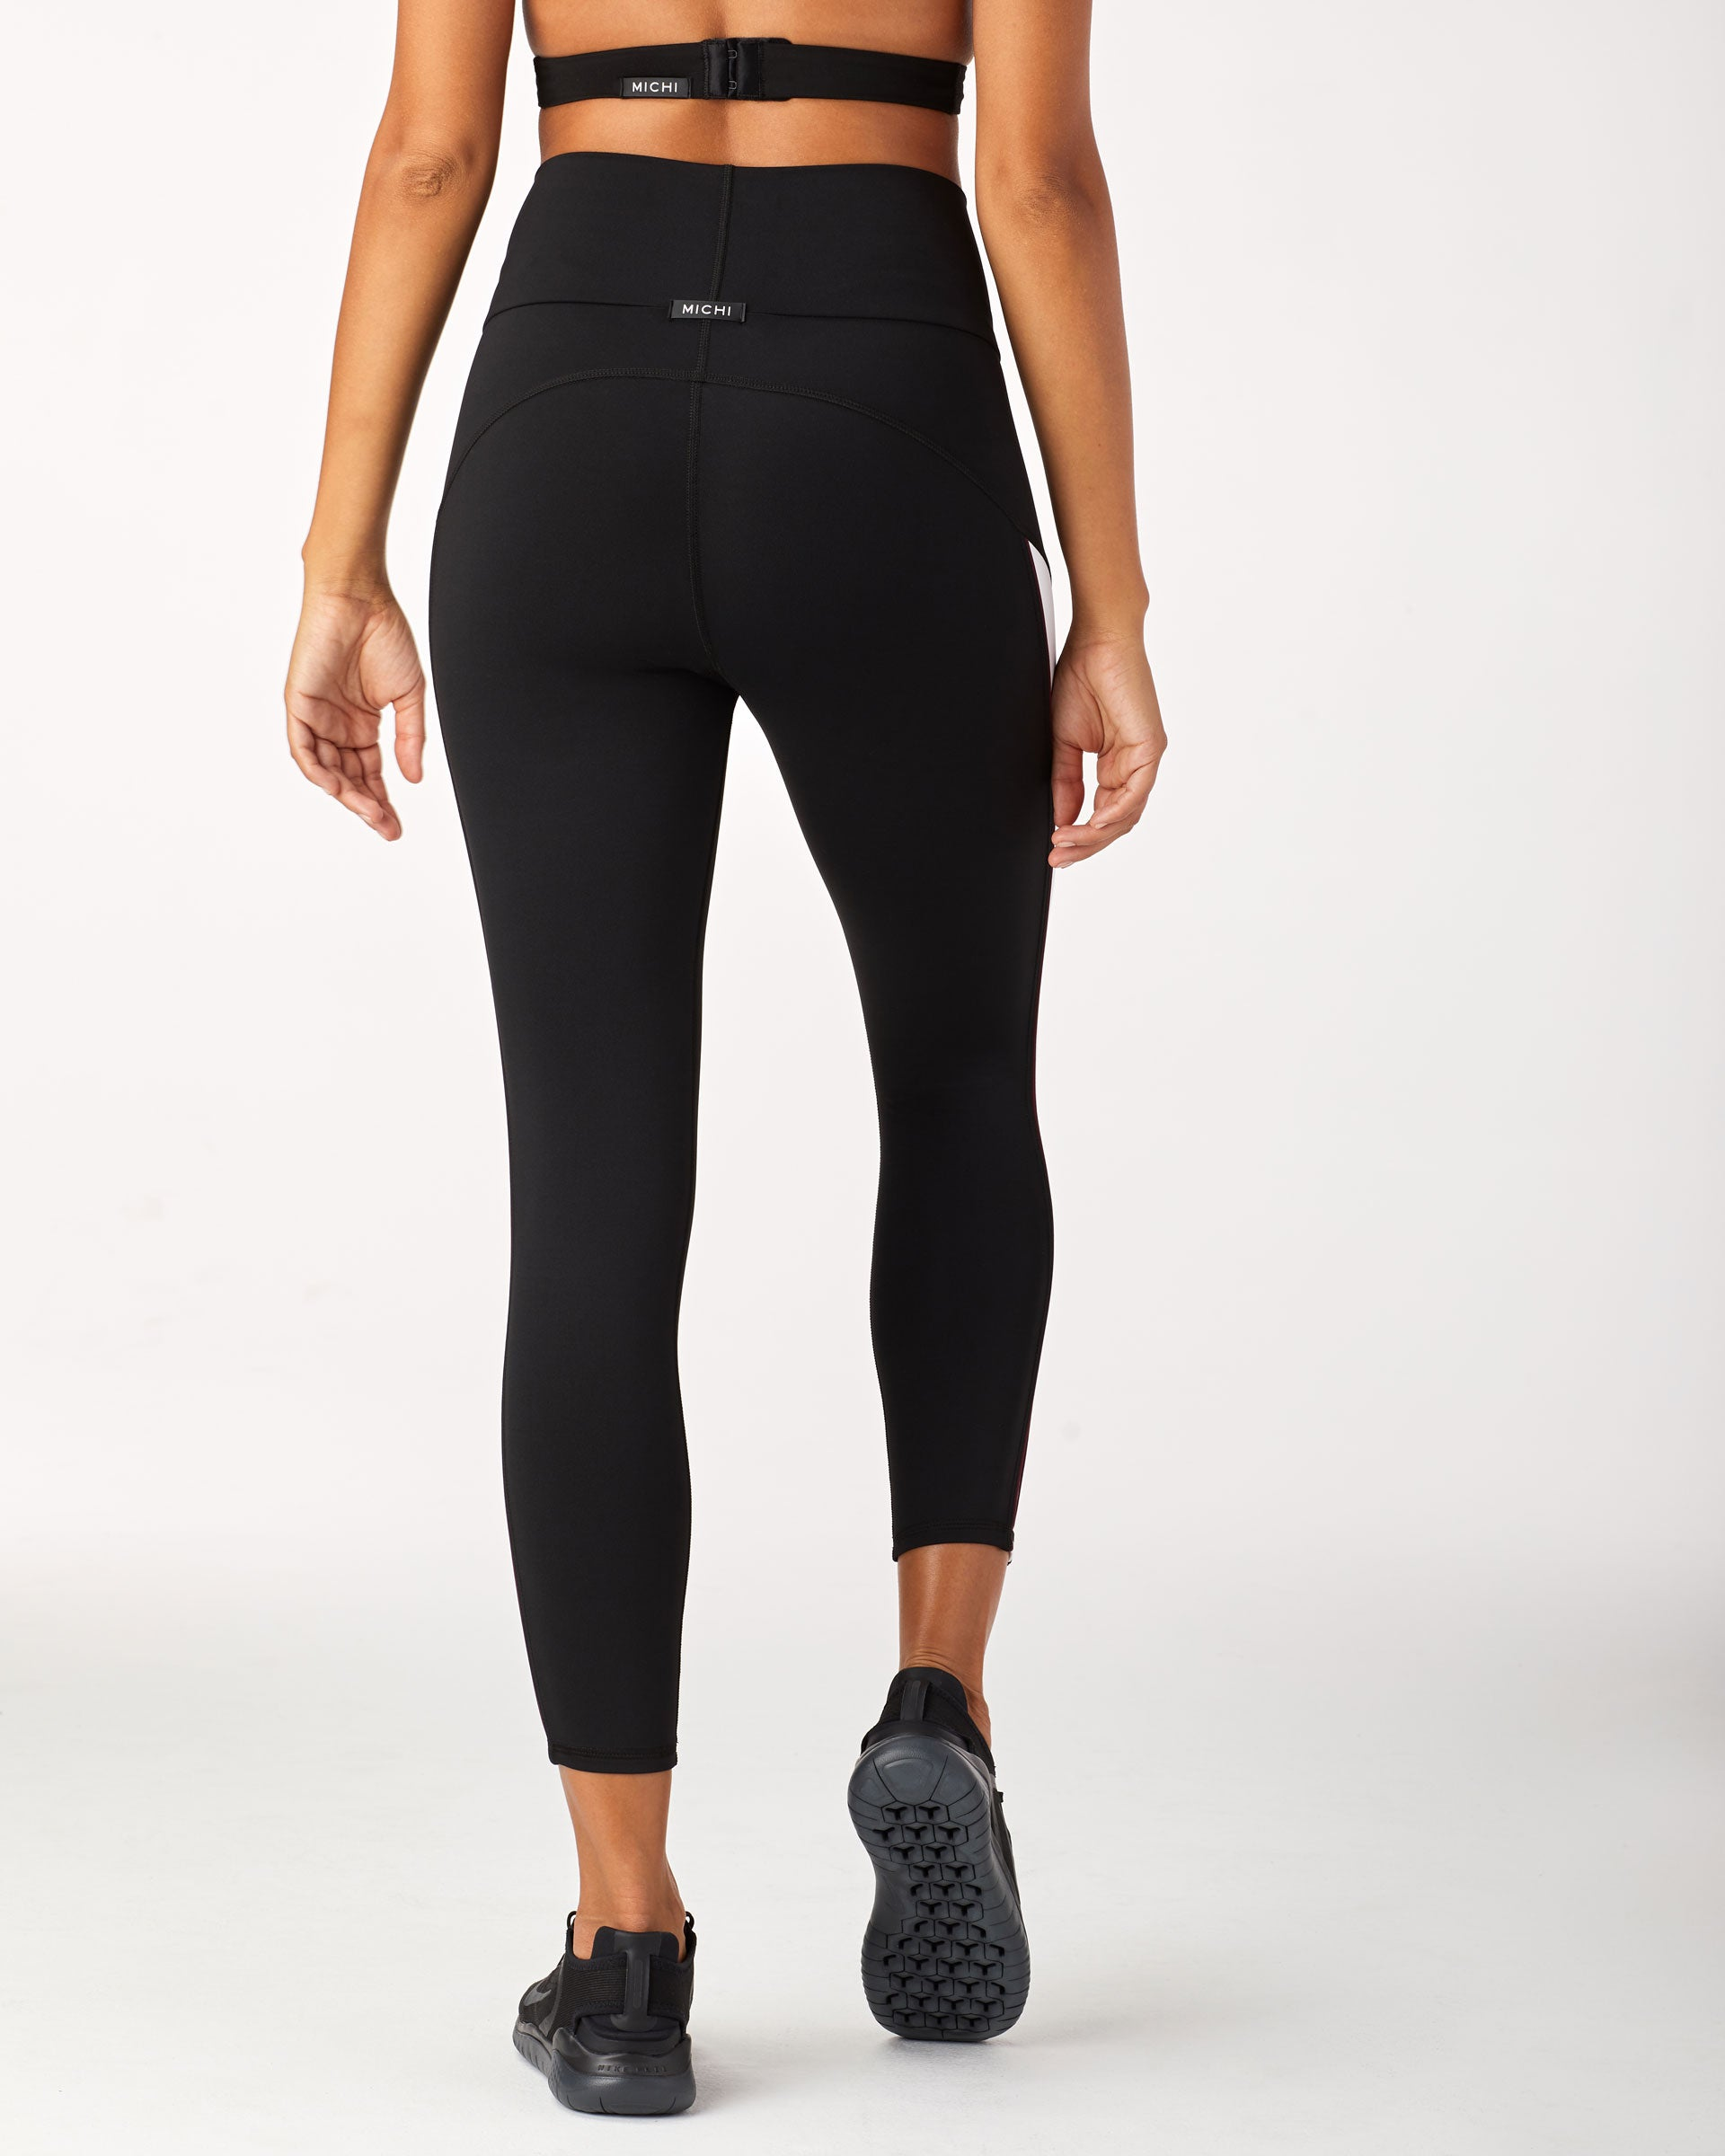 channel-high-waisted-crop-legging-black-white-wine